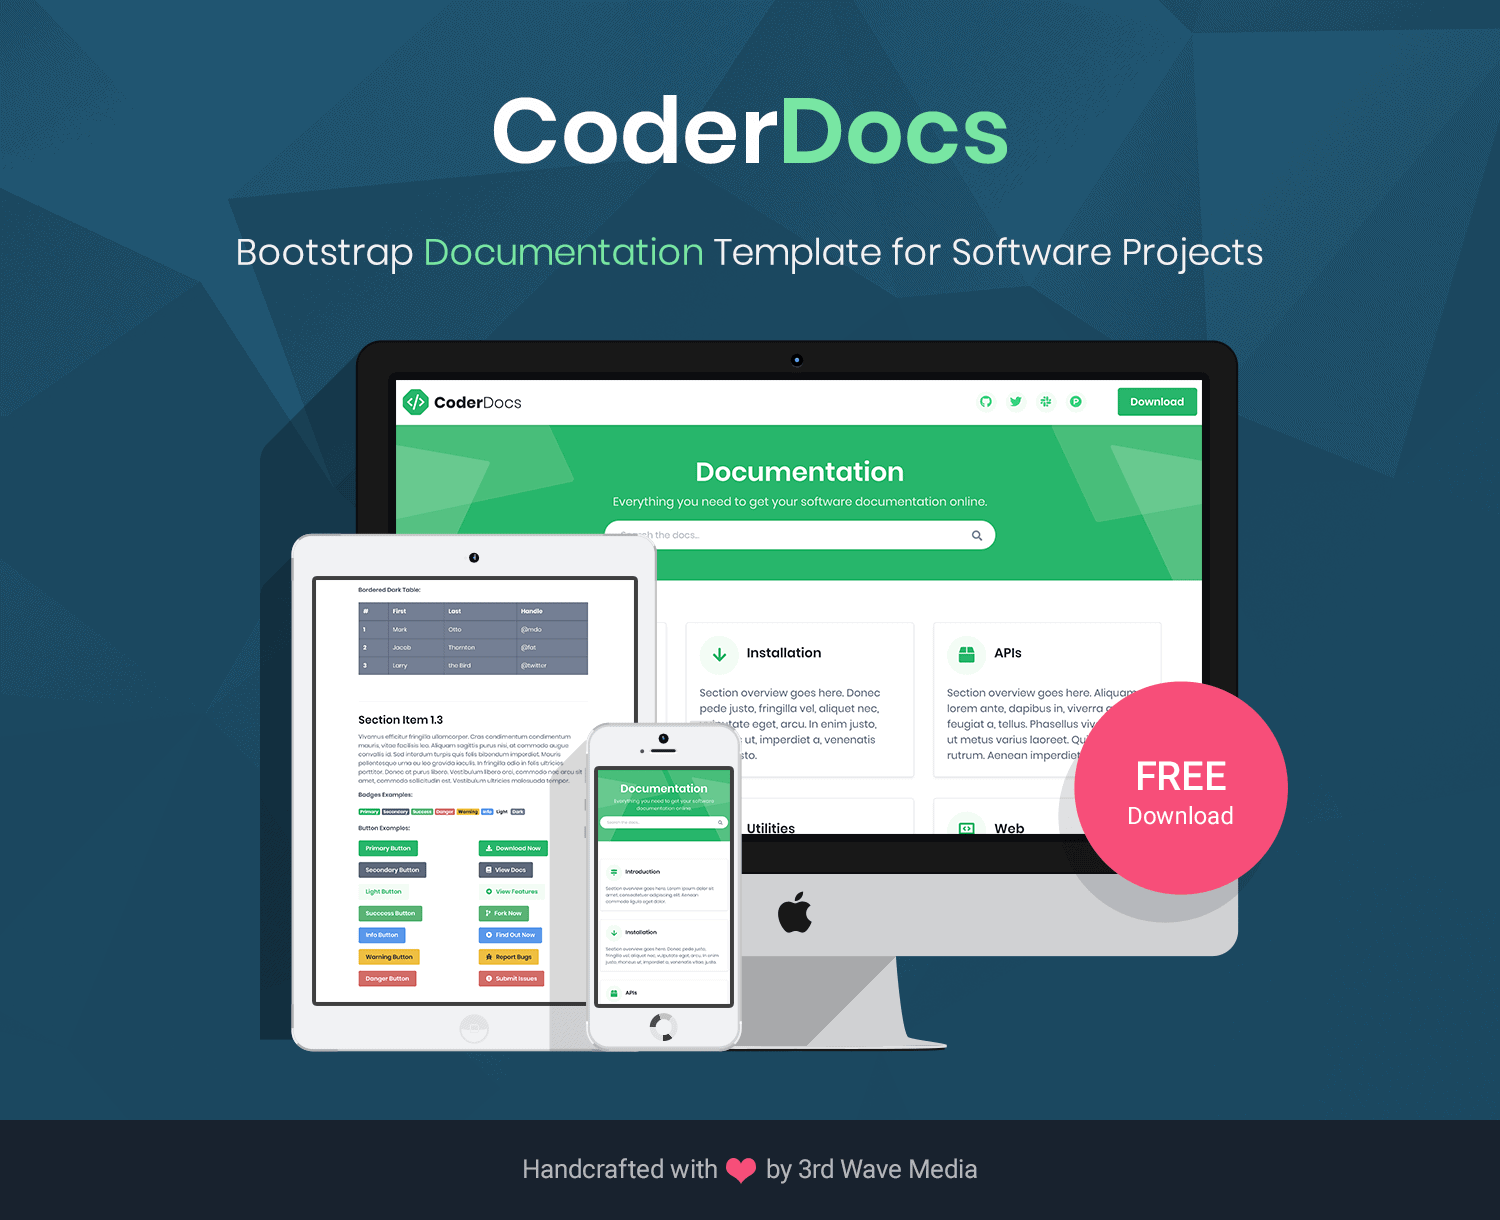 CoderDocs Bootstrap Documentation Template For Software Projects